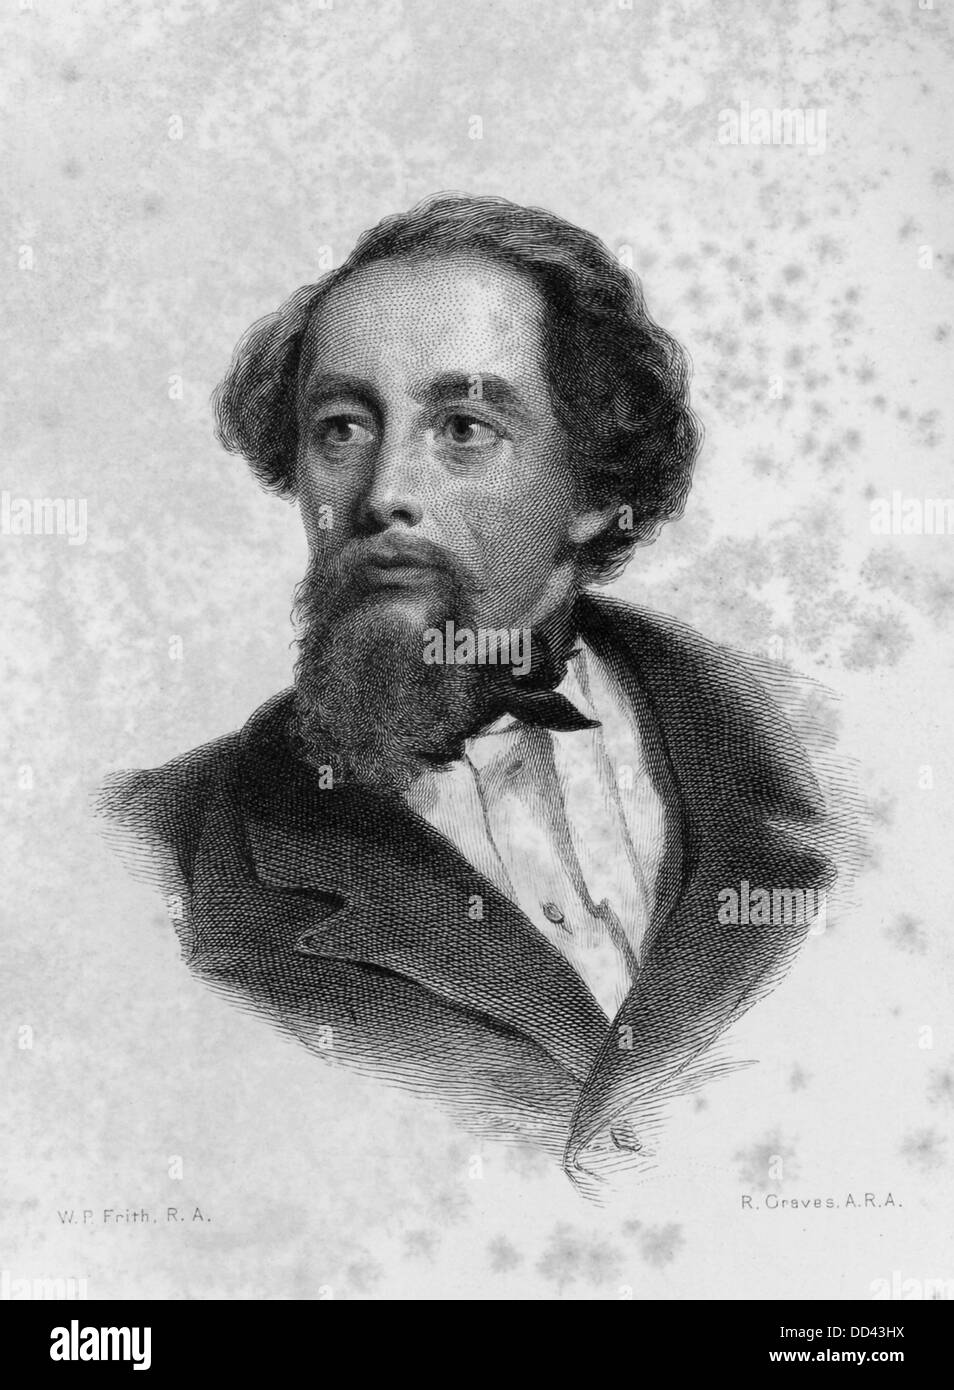 Charles Dickens, shown here at 47, is one of the best known and most distinguished English novelists. - Stock Image